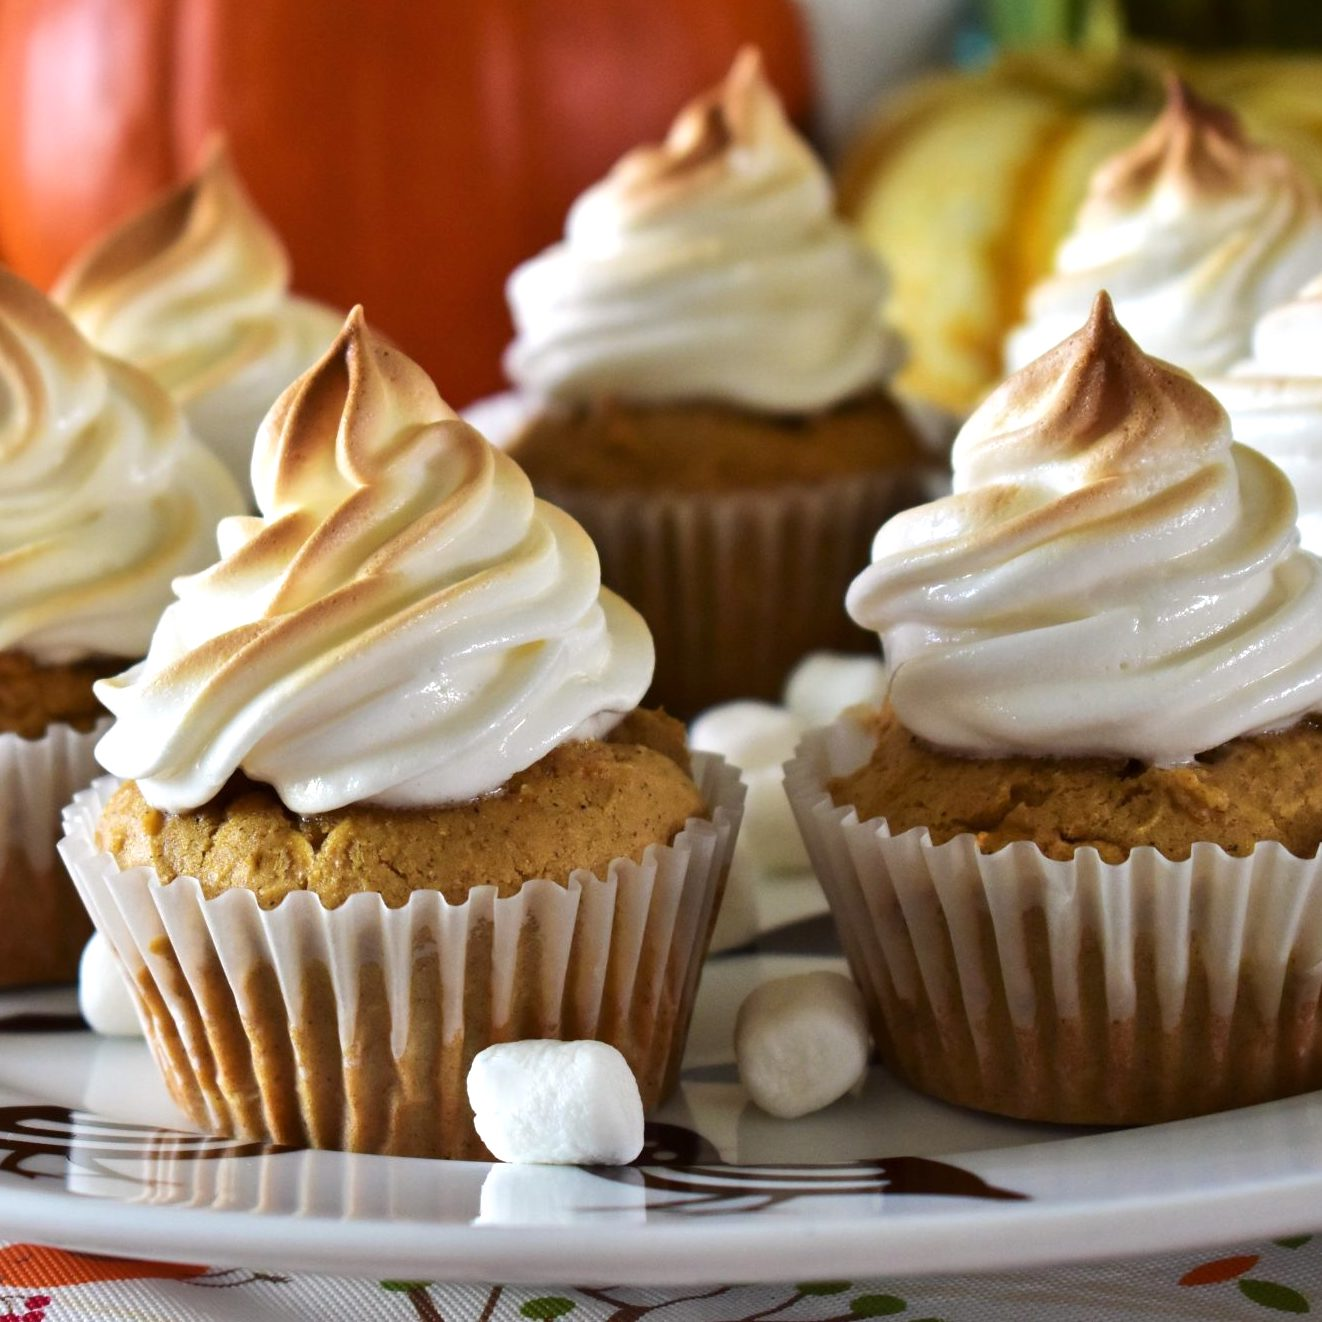 cupcakes with piped marshmallow topping on a white dish